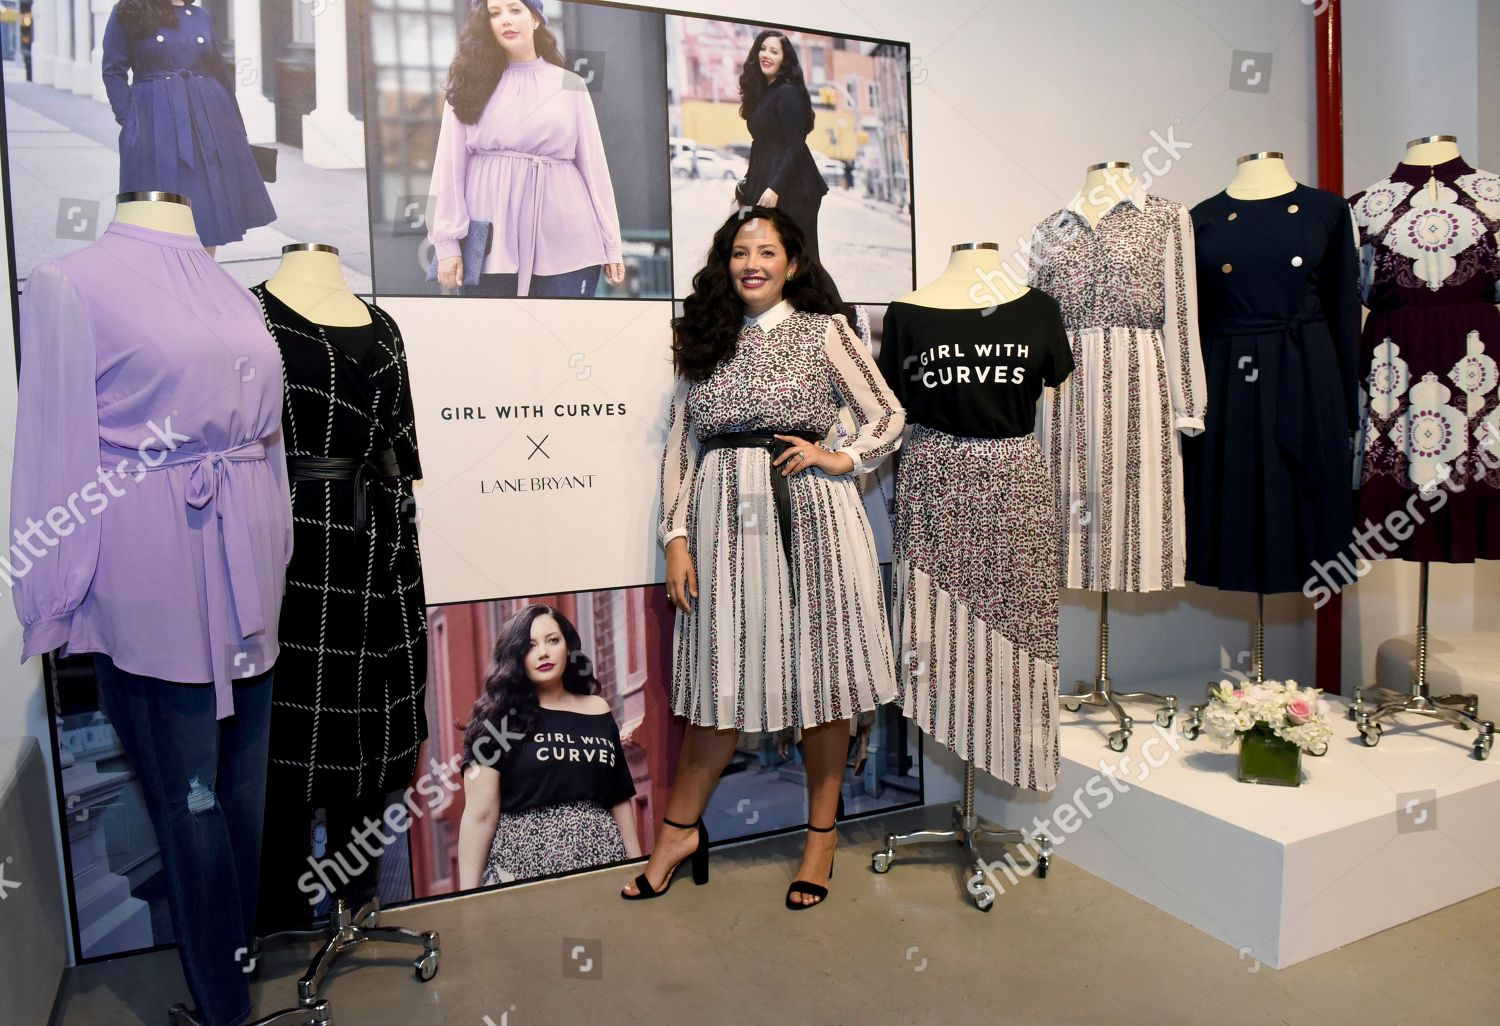 Curves new york Motorcycle Girl With Curves Lane Bryant Popup Shop New York Usa New York Company Influencer Tanesha Awasthi Girl Curves Celebrates Debut Editorial